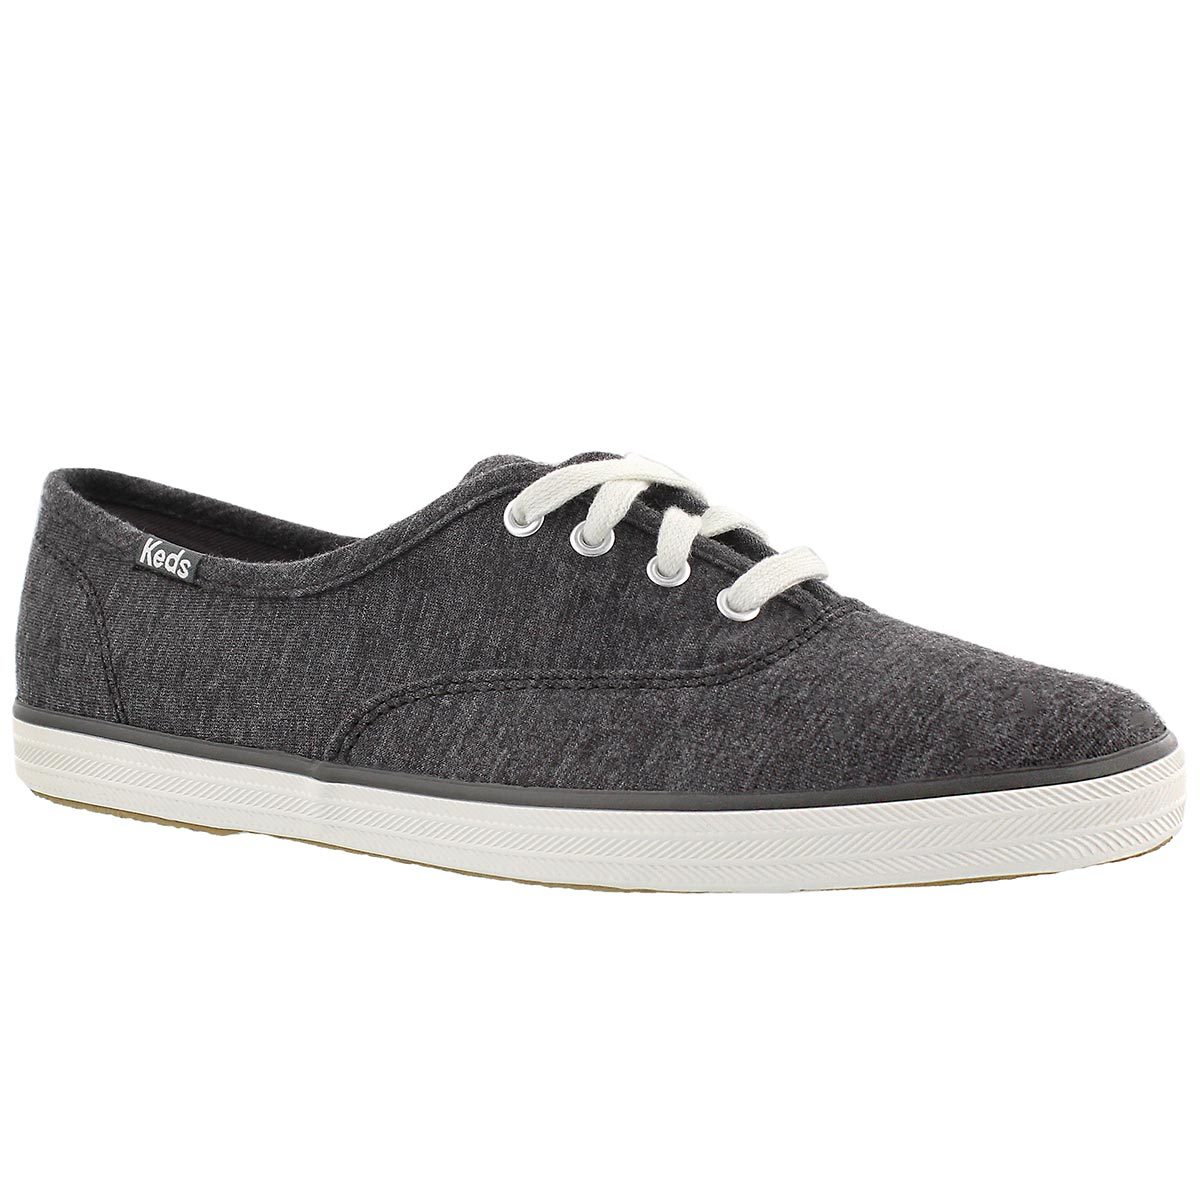 Women's CHAMPION JERSEY graphite sneakers